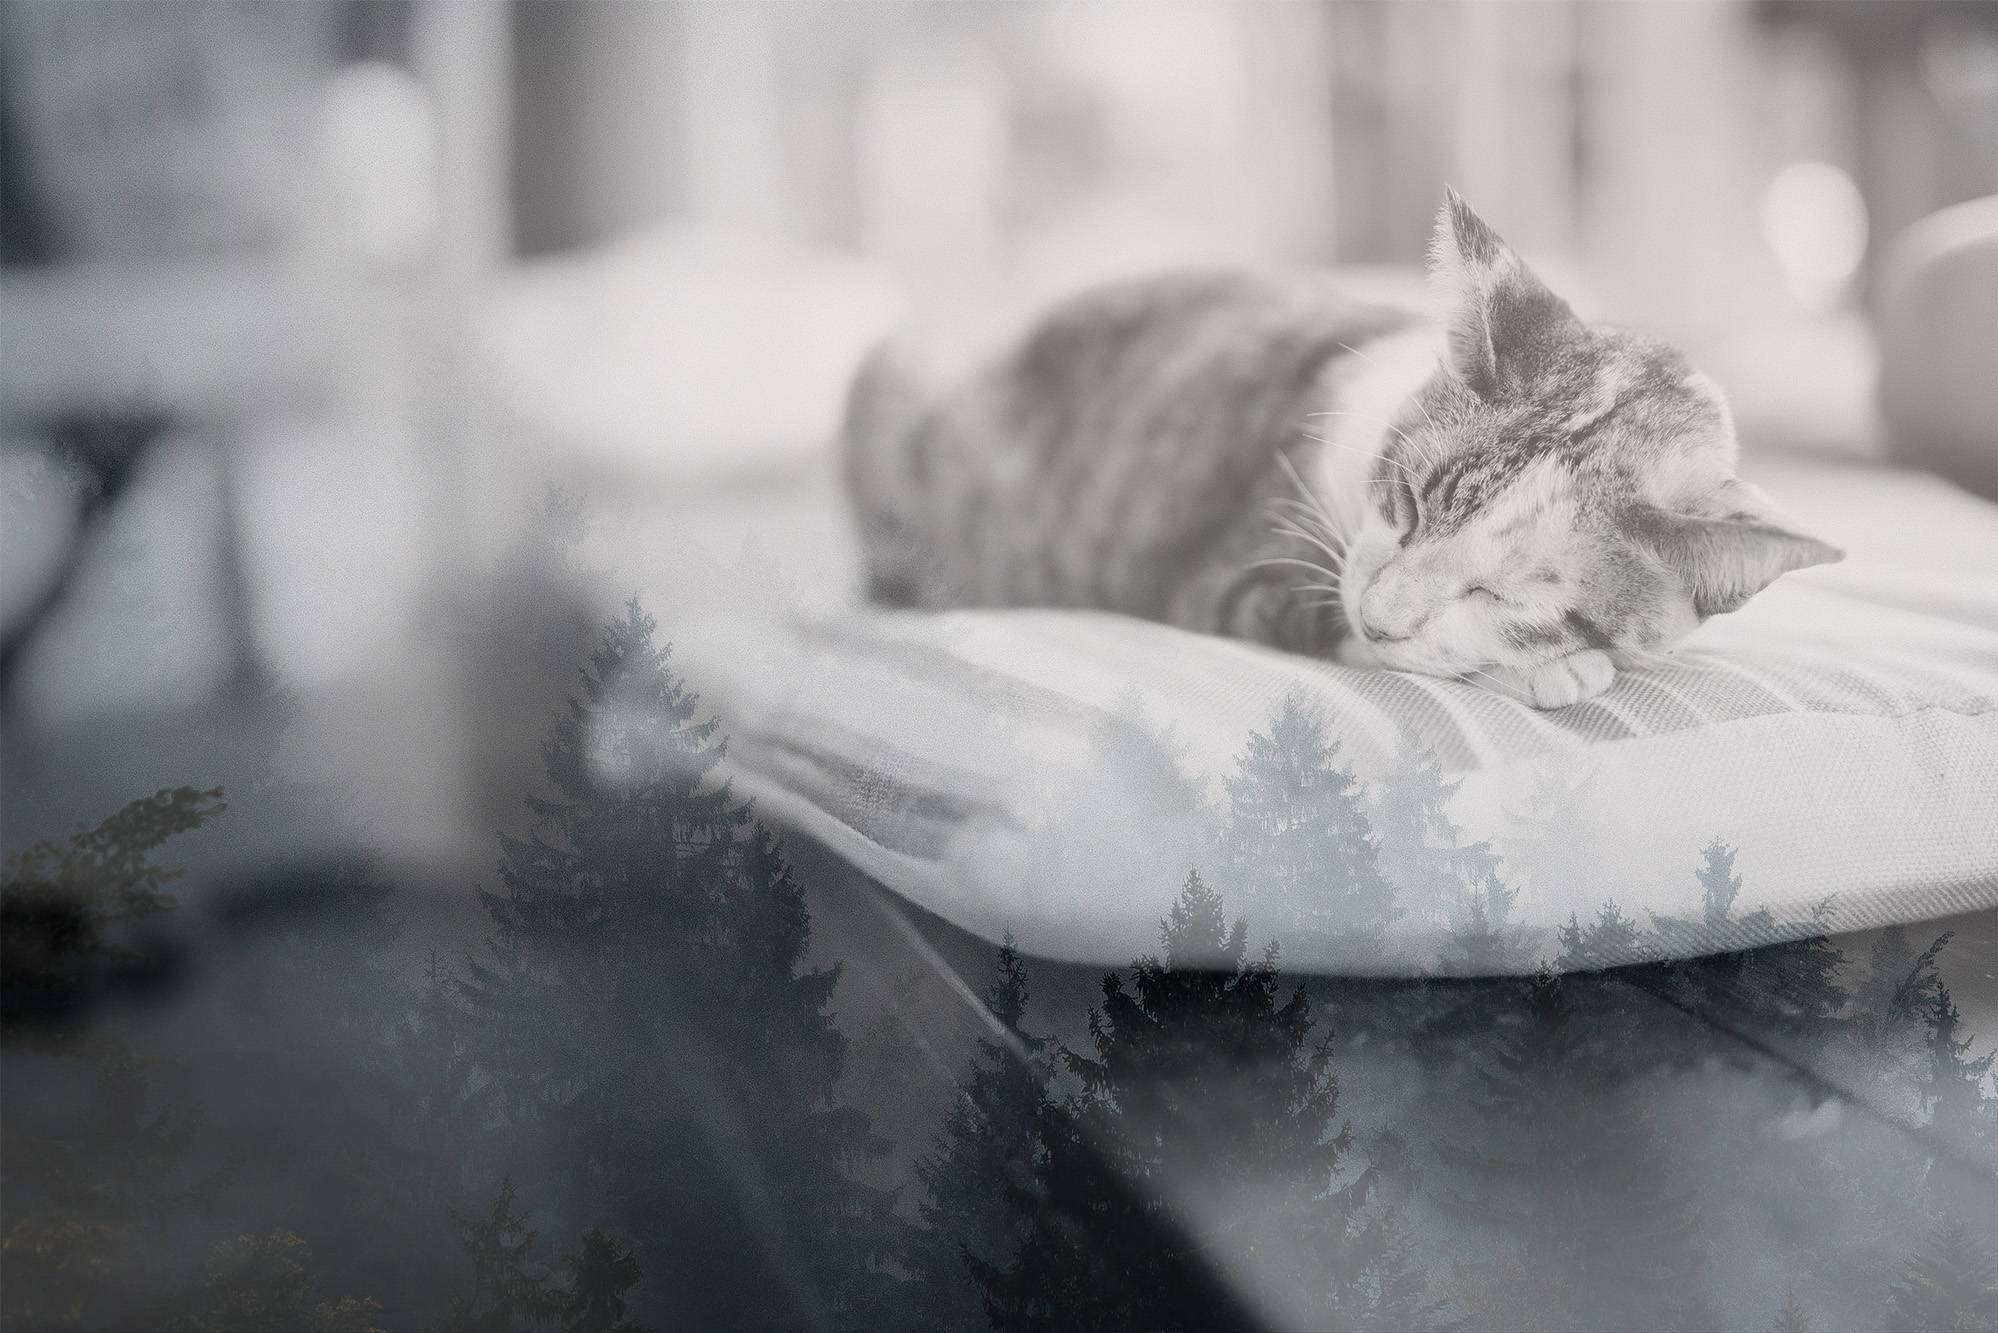 How to Care for a Deceased Pet at Home